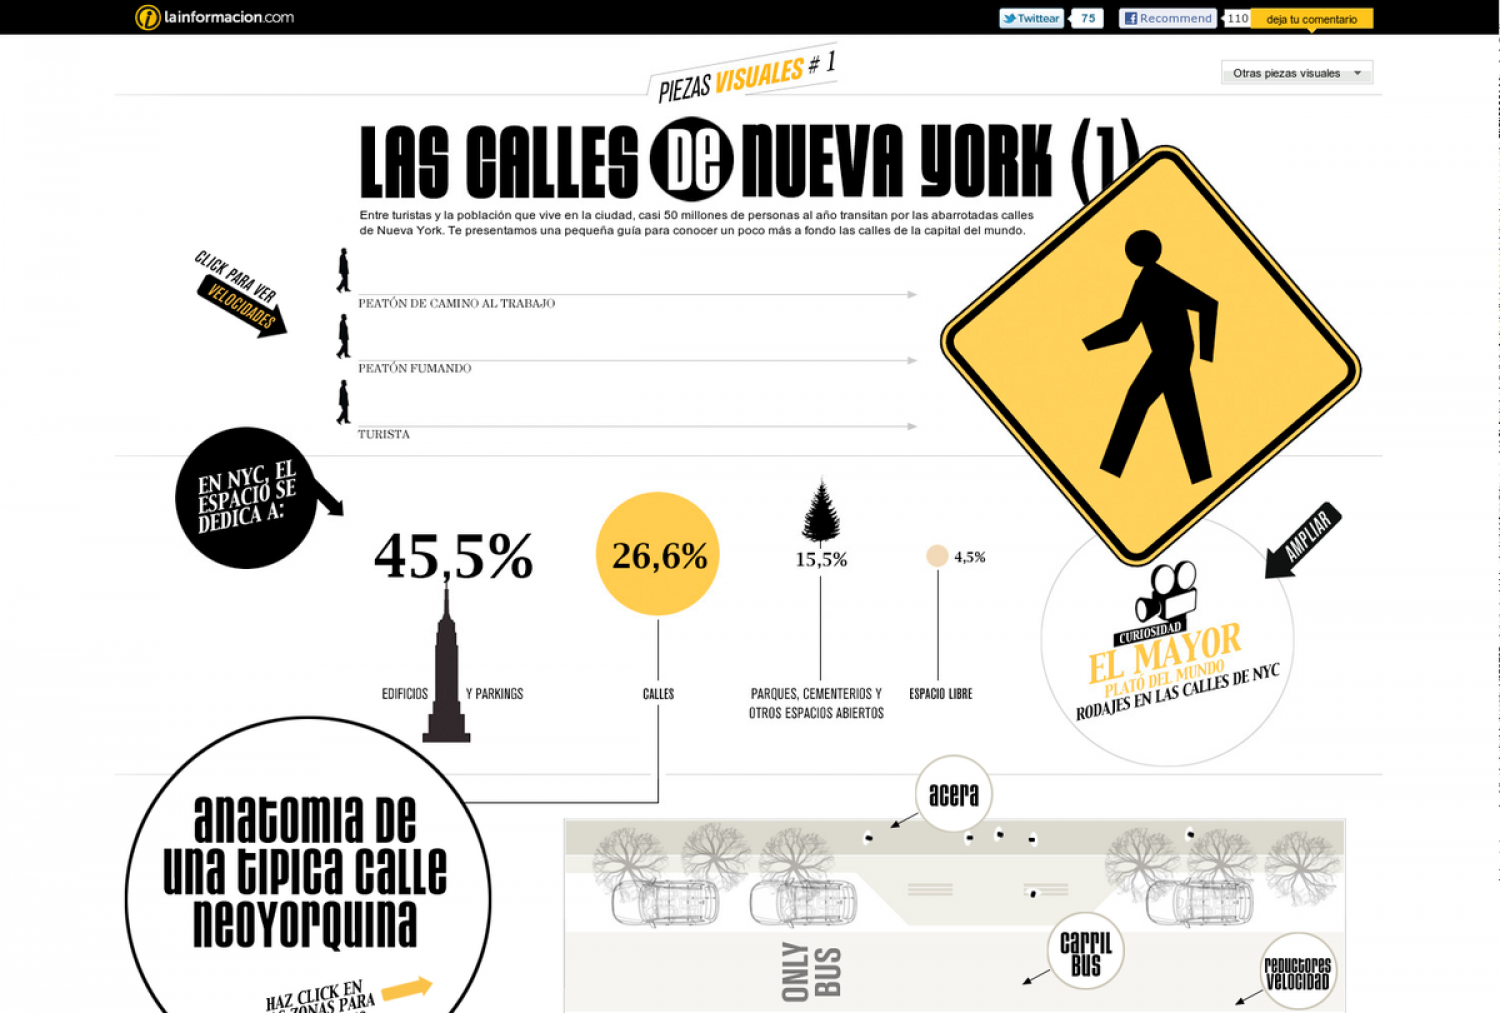 Pedestrians in NYC Infographic